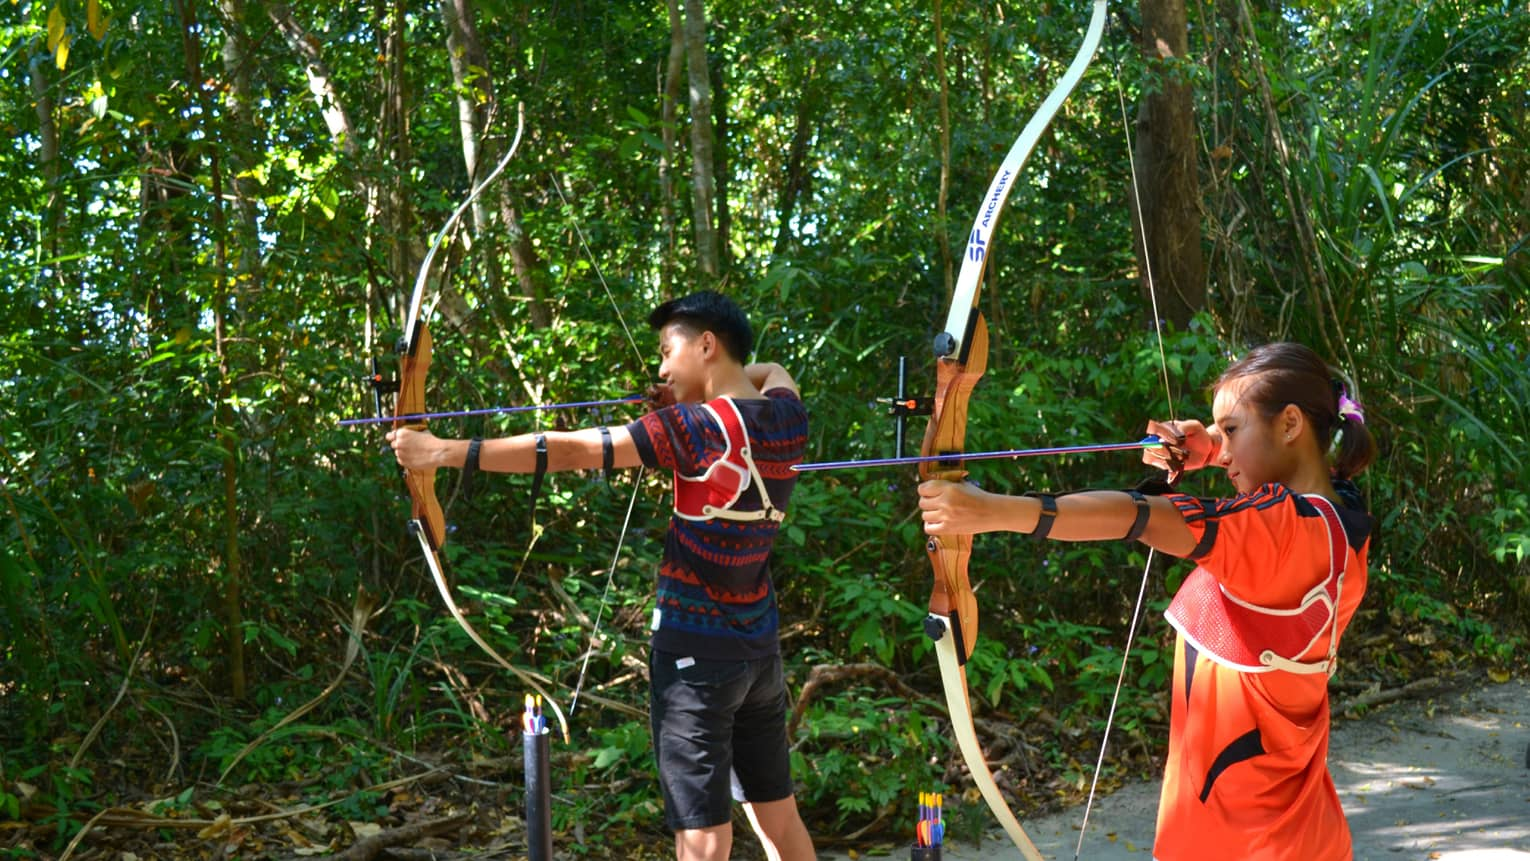 Man and woman stand with archery bow and arrows, prepare to shoot